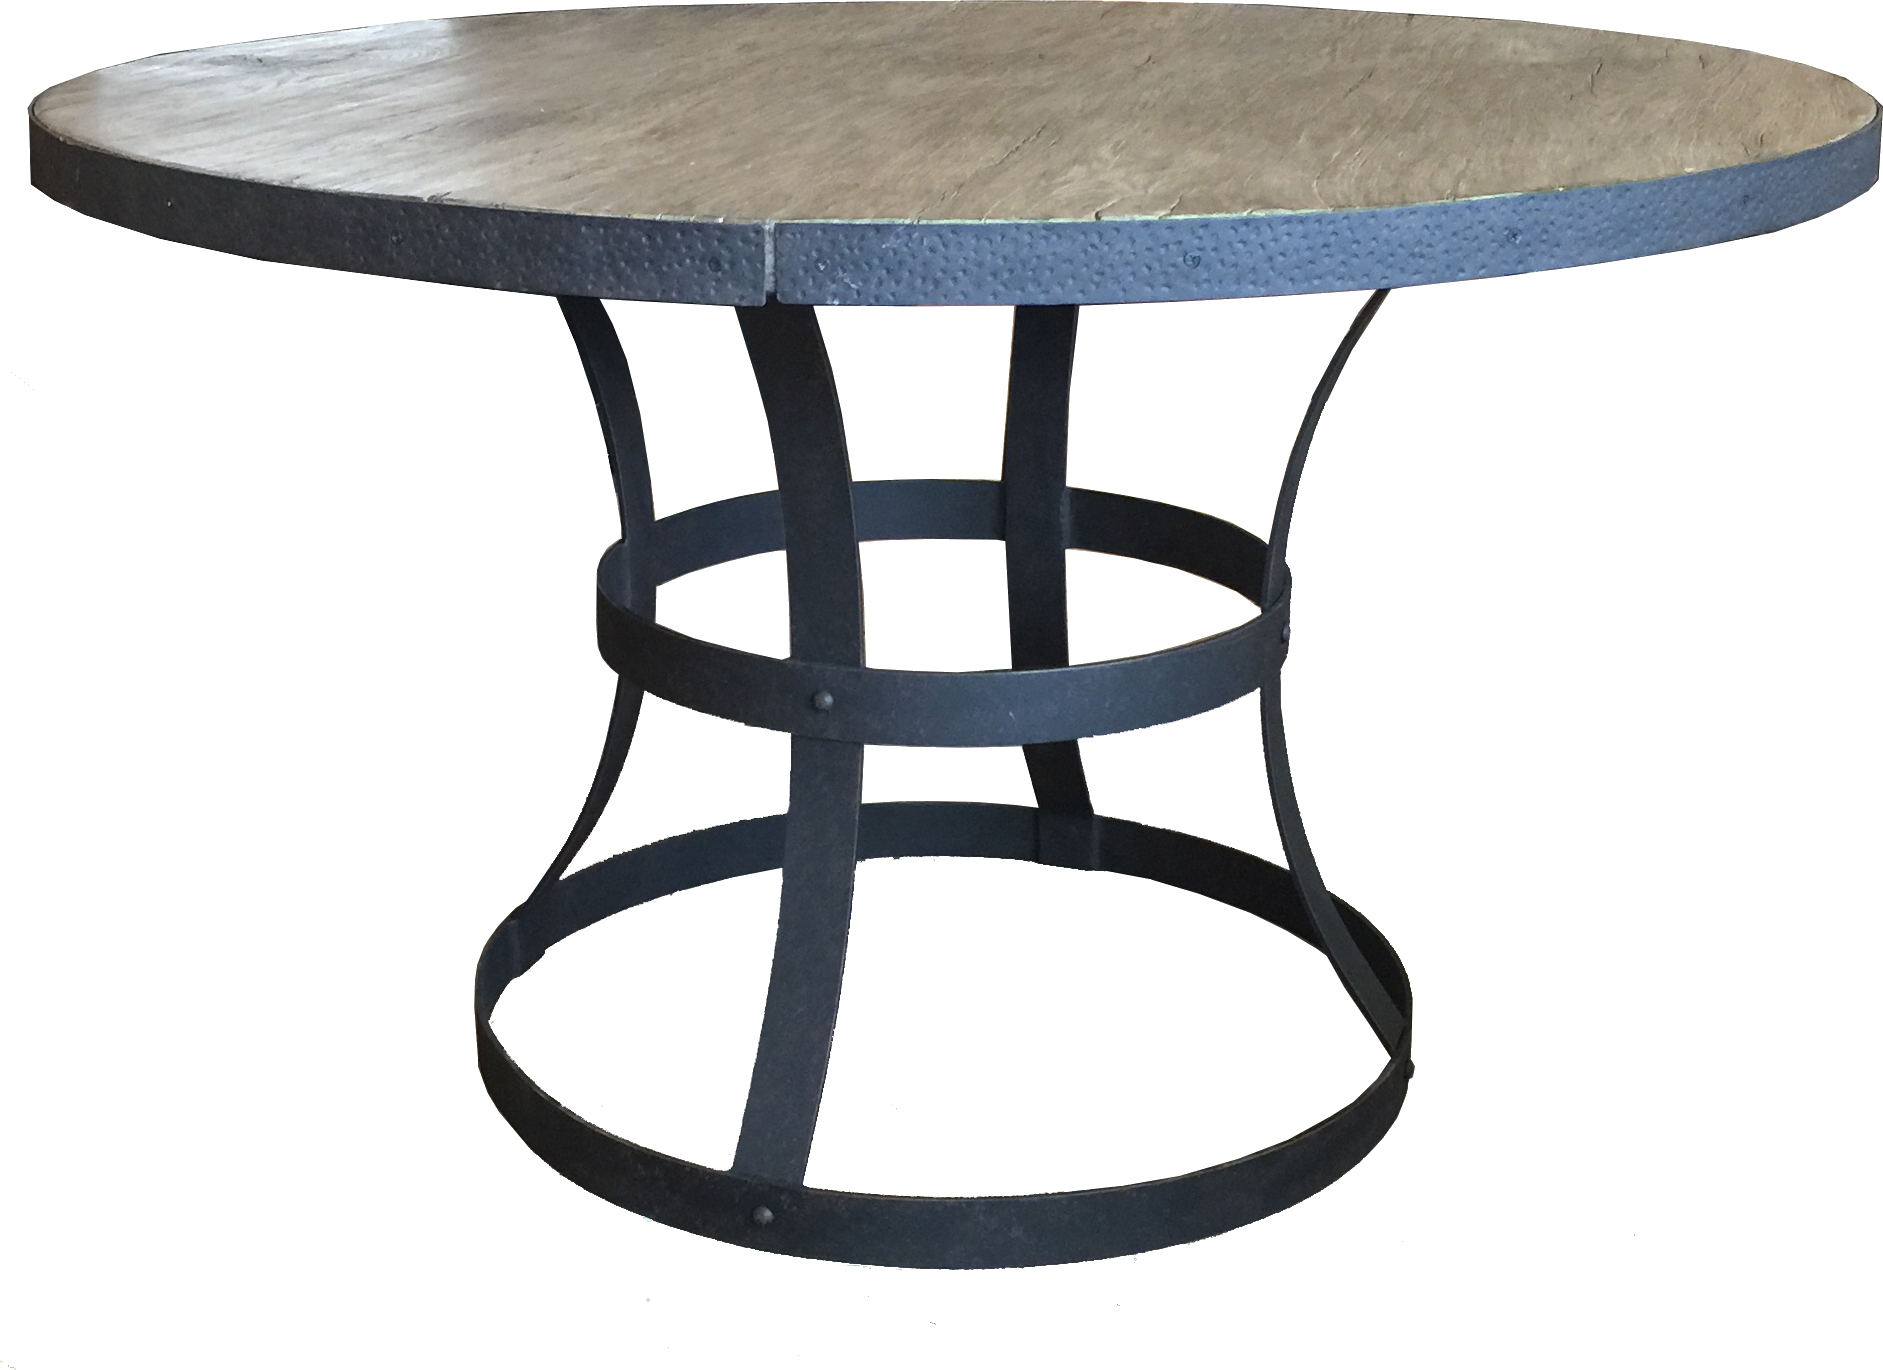 """PL-60R 60"""" Round Dining Table Base   31"""" dia x 28""""  Top - EA-60R Erie 60"""" Round Faux Wood Top Reclaimed Barnwood"""